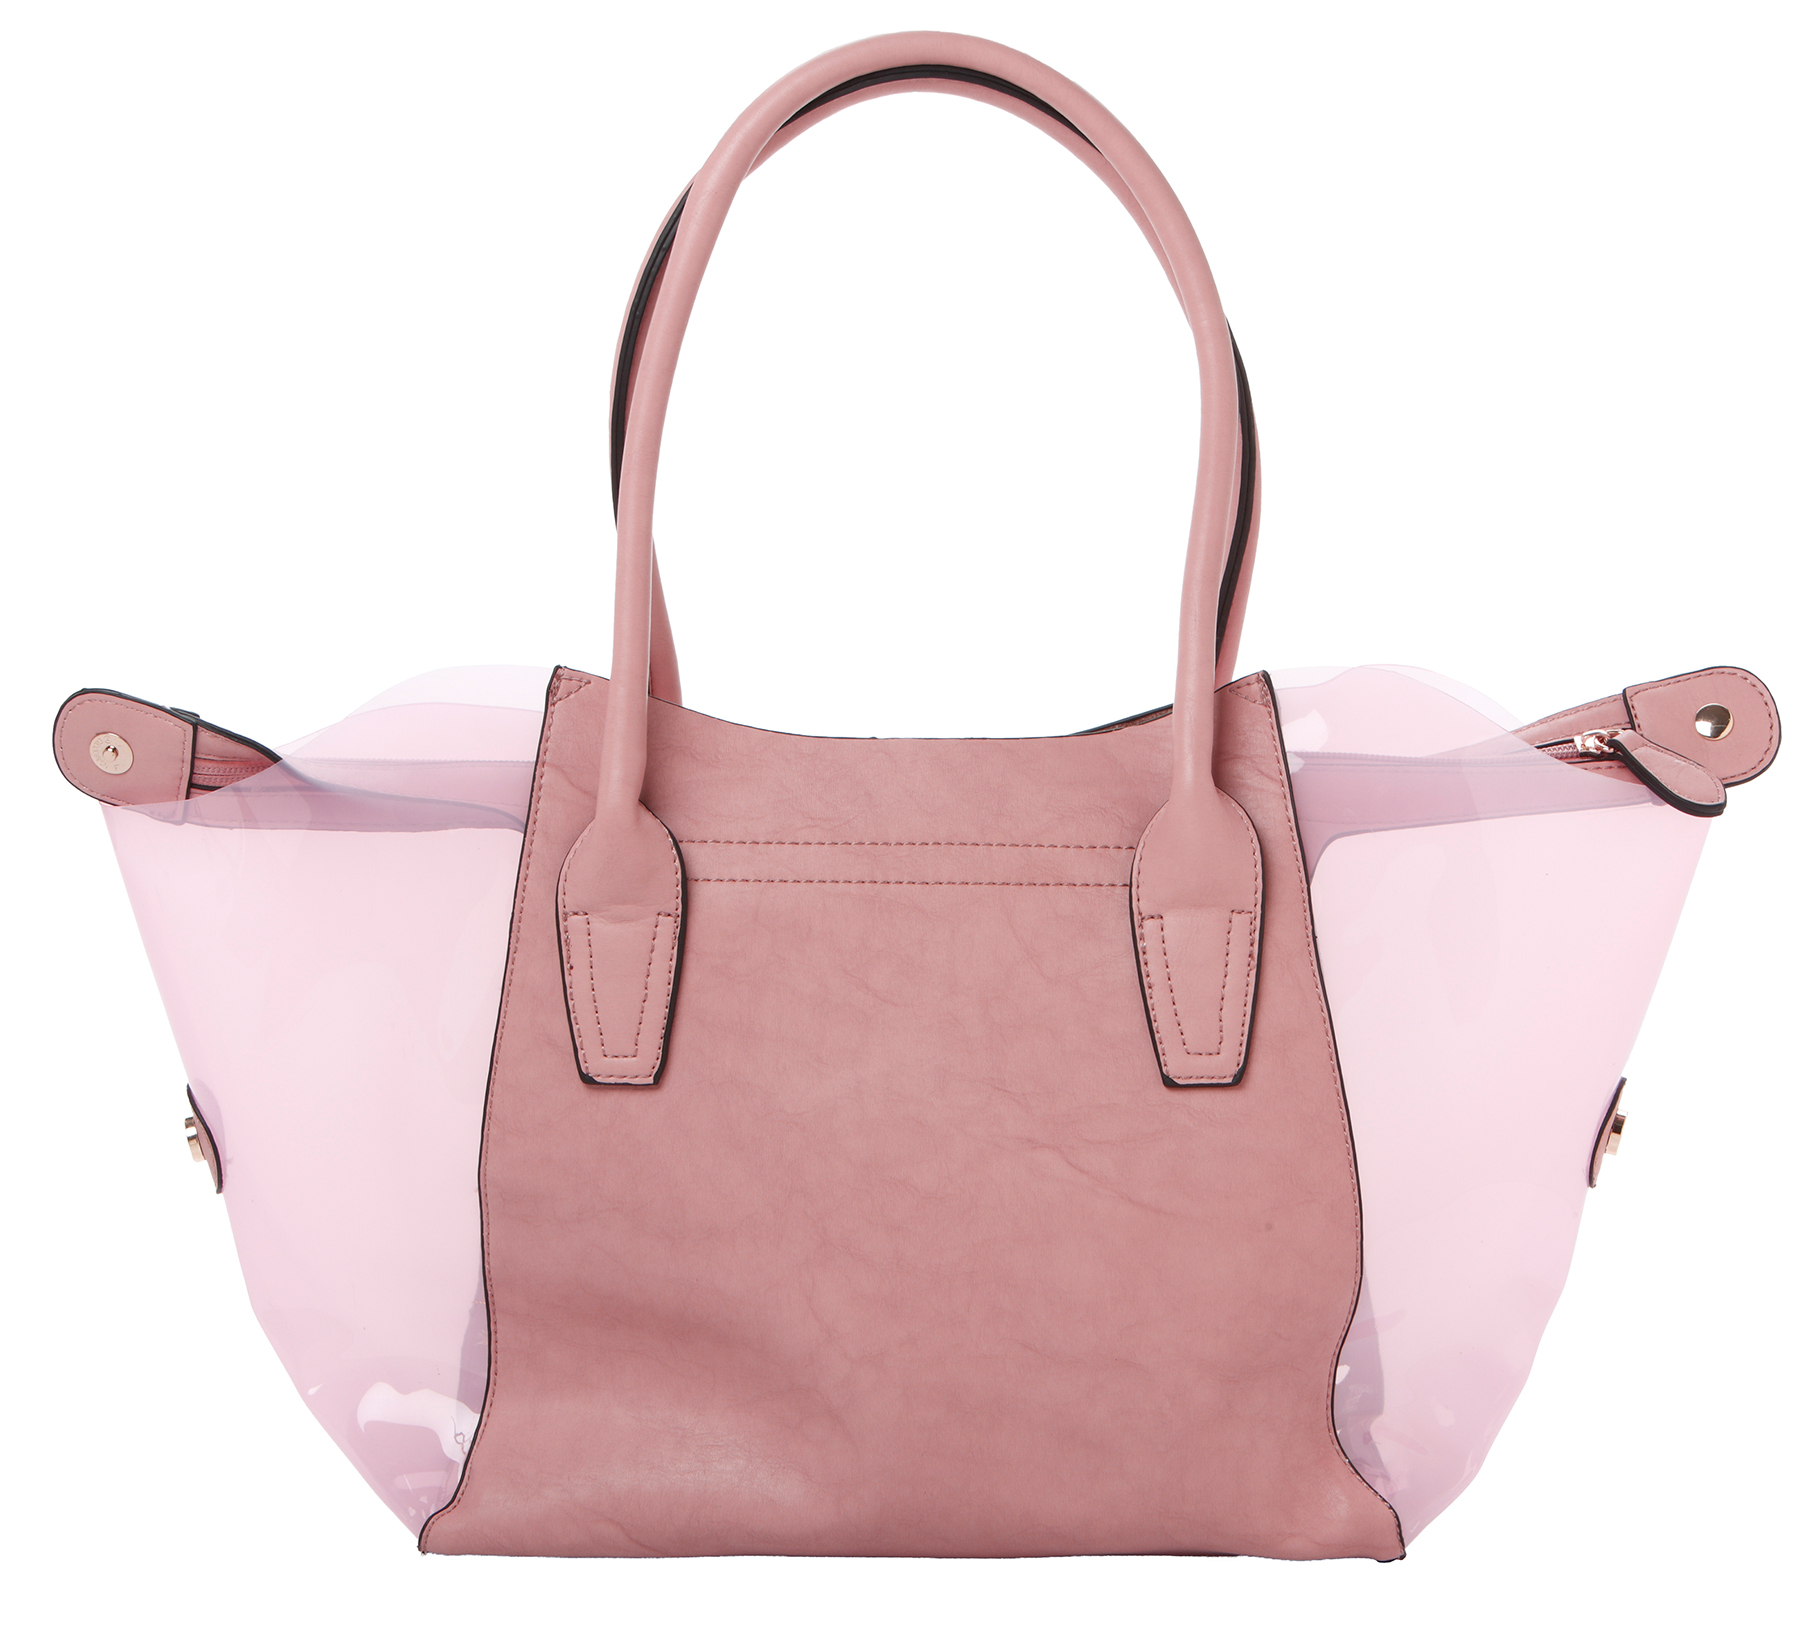 Lara pink 2 in 1 shopper tote back image